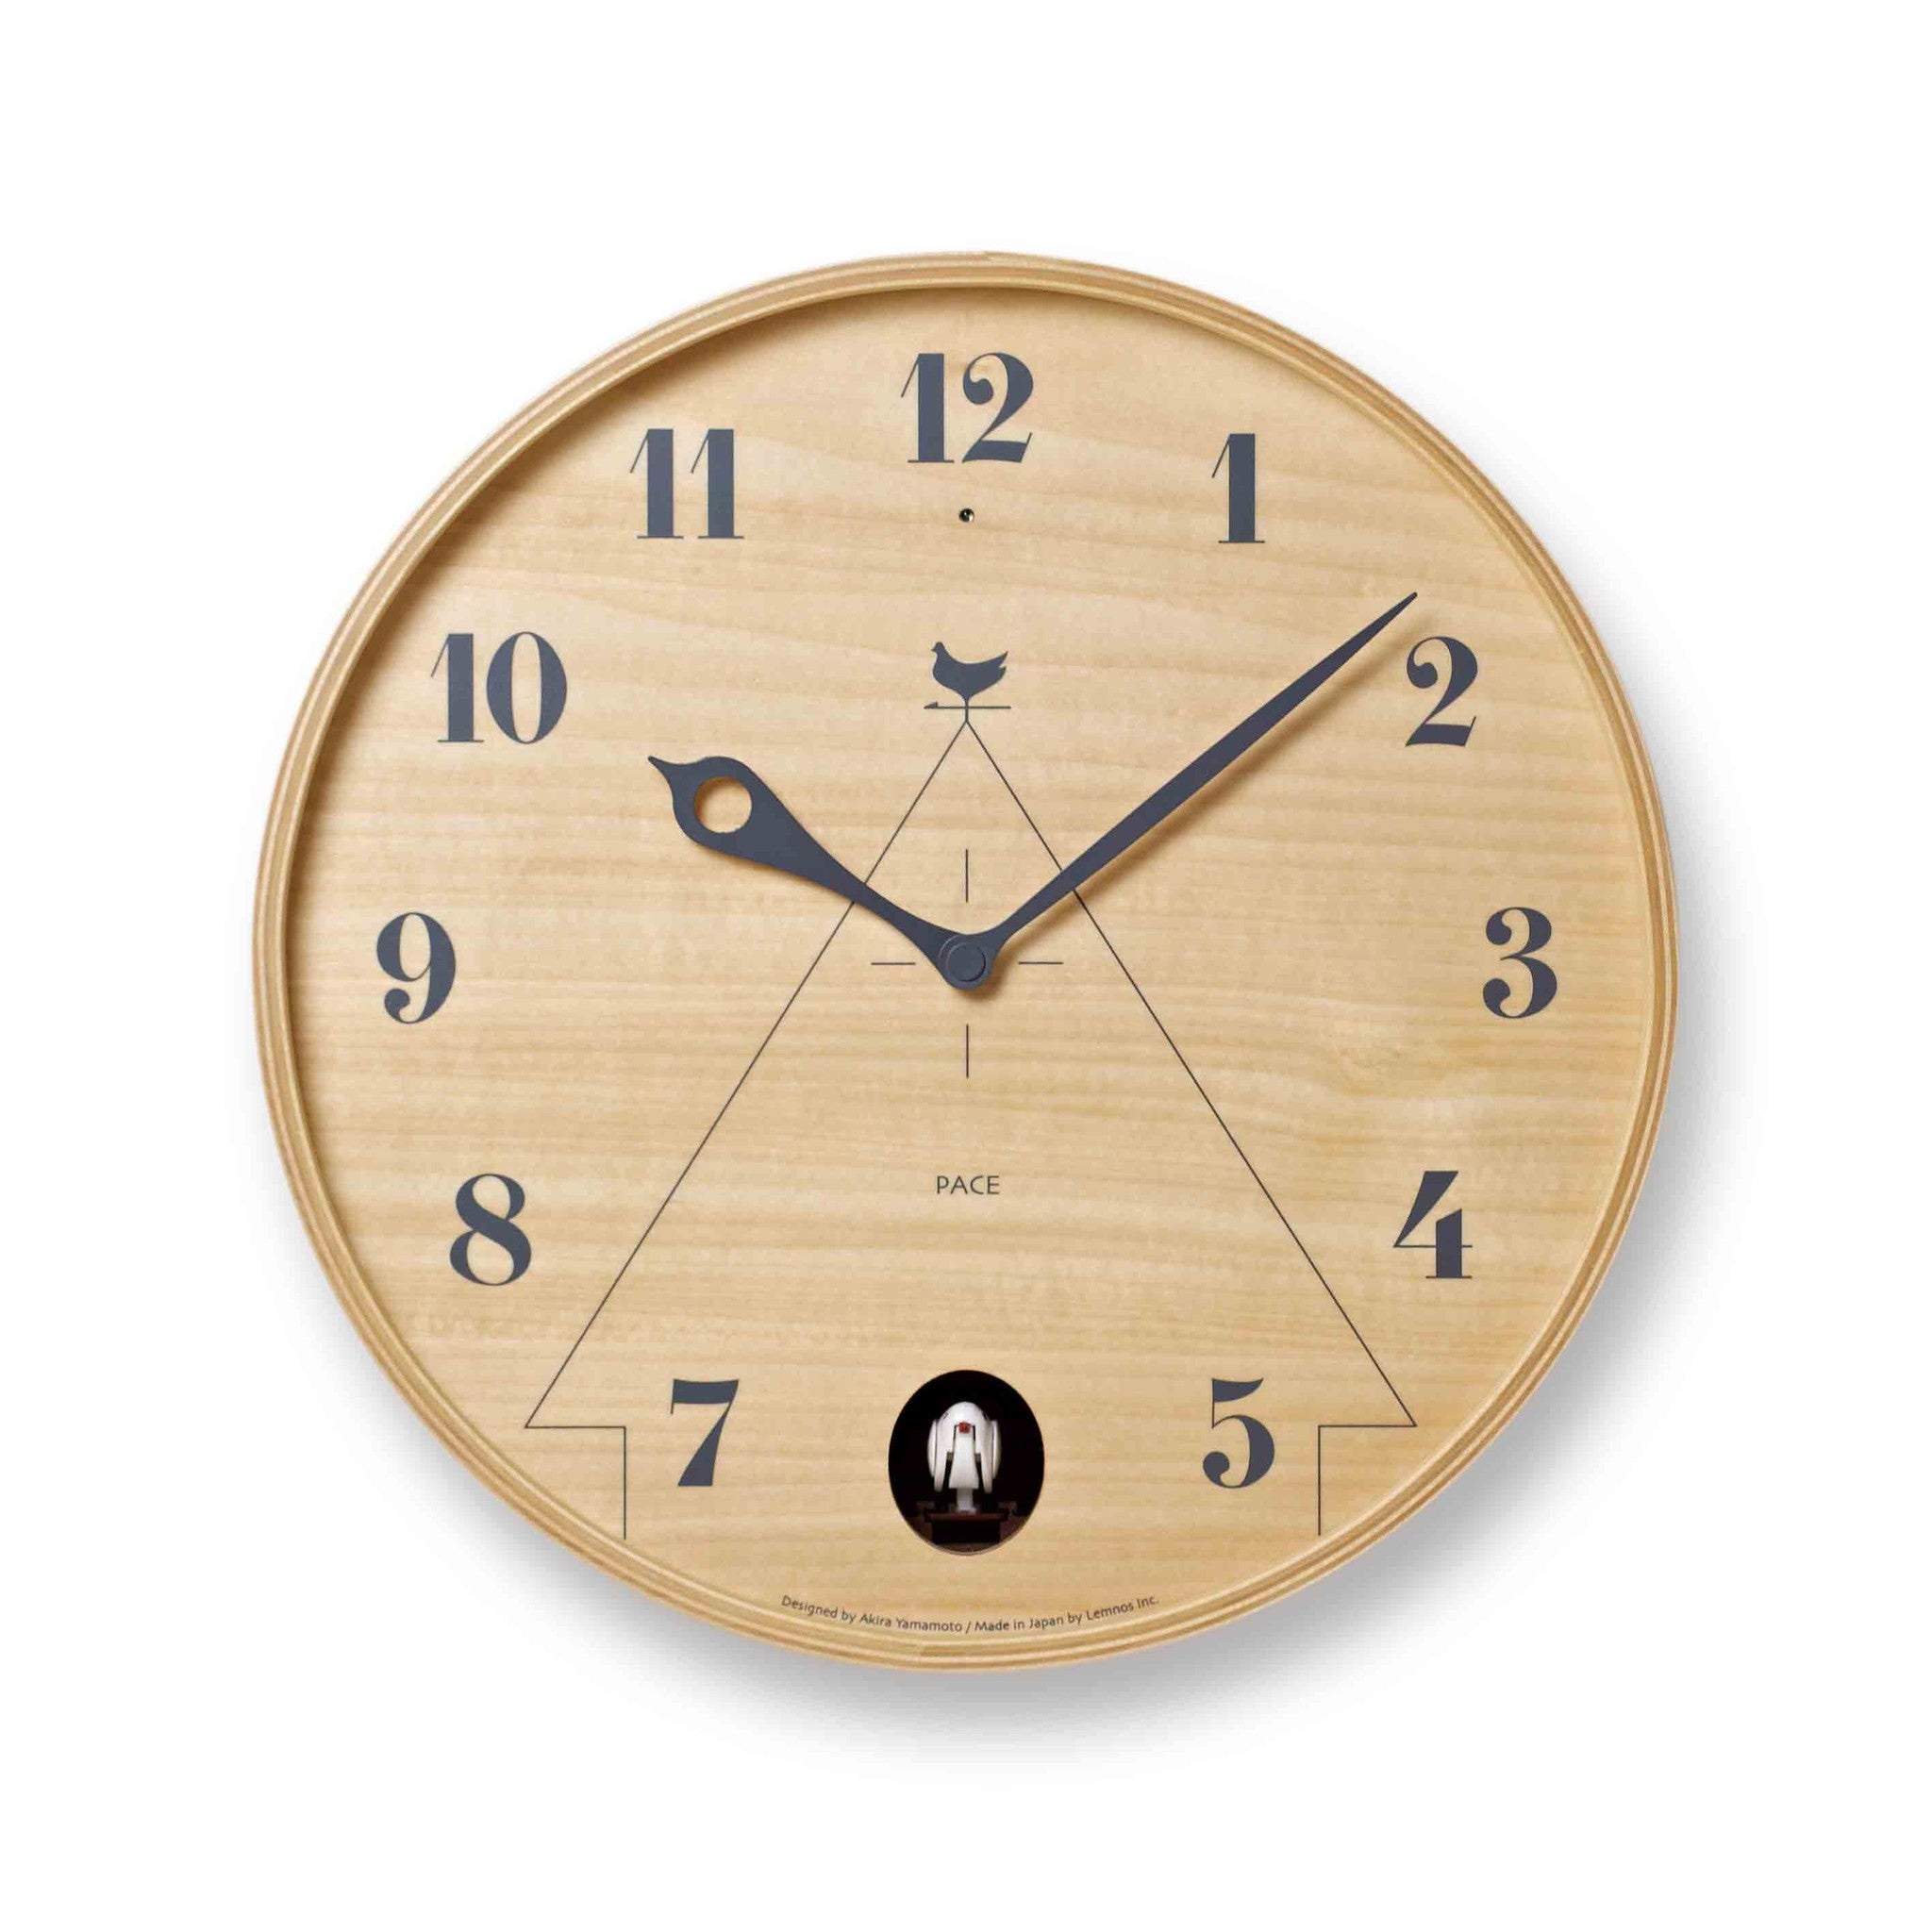 Pace wall clock 305cm natural wood by lemnos cuckoo collections cuckoo clock pace wall clock 305cm natural wood by lemnos amipublicfo Image collections